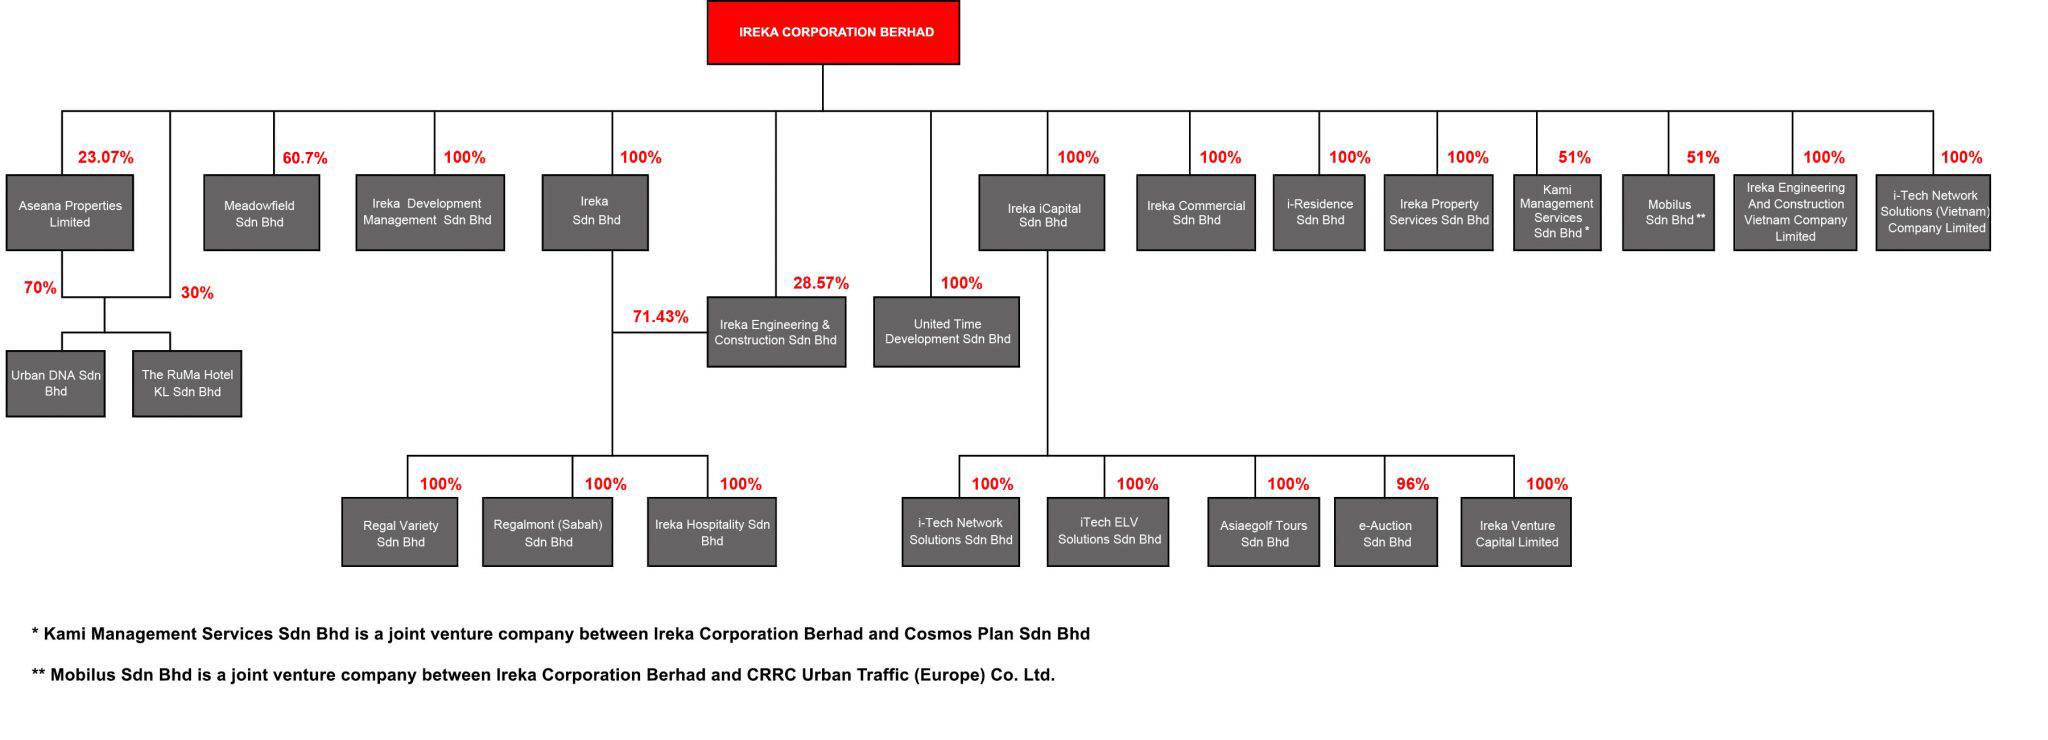 IREKA-CORPORATION-BERHAD-GROUP-STRUCTURE-22th-May-2020